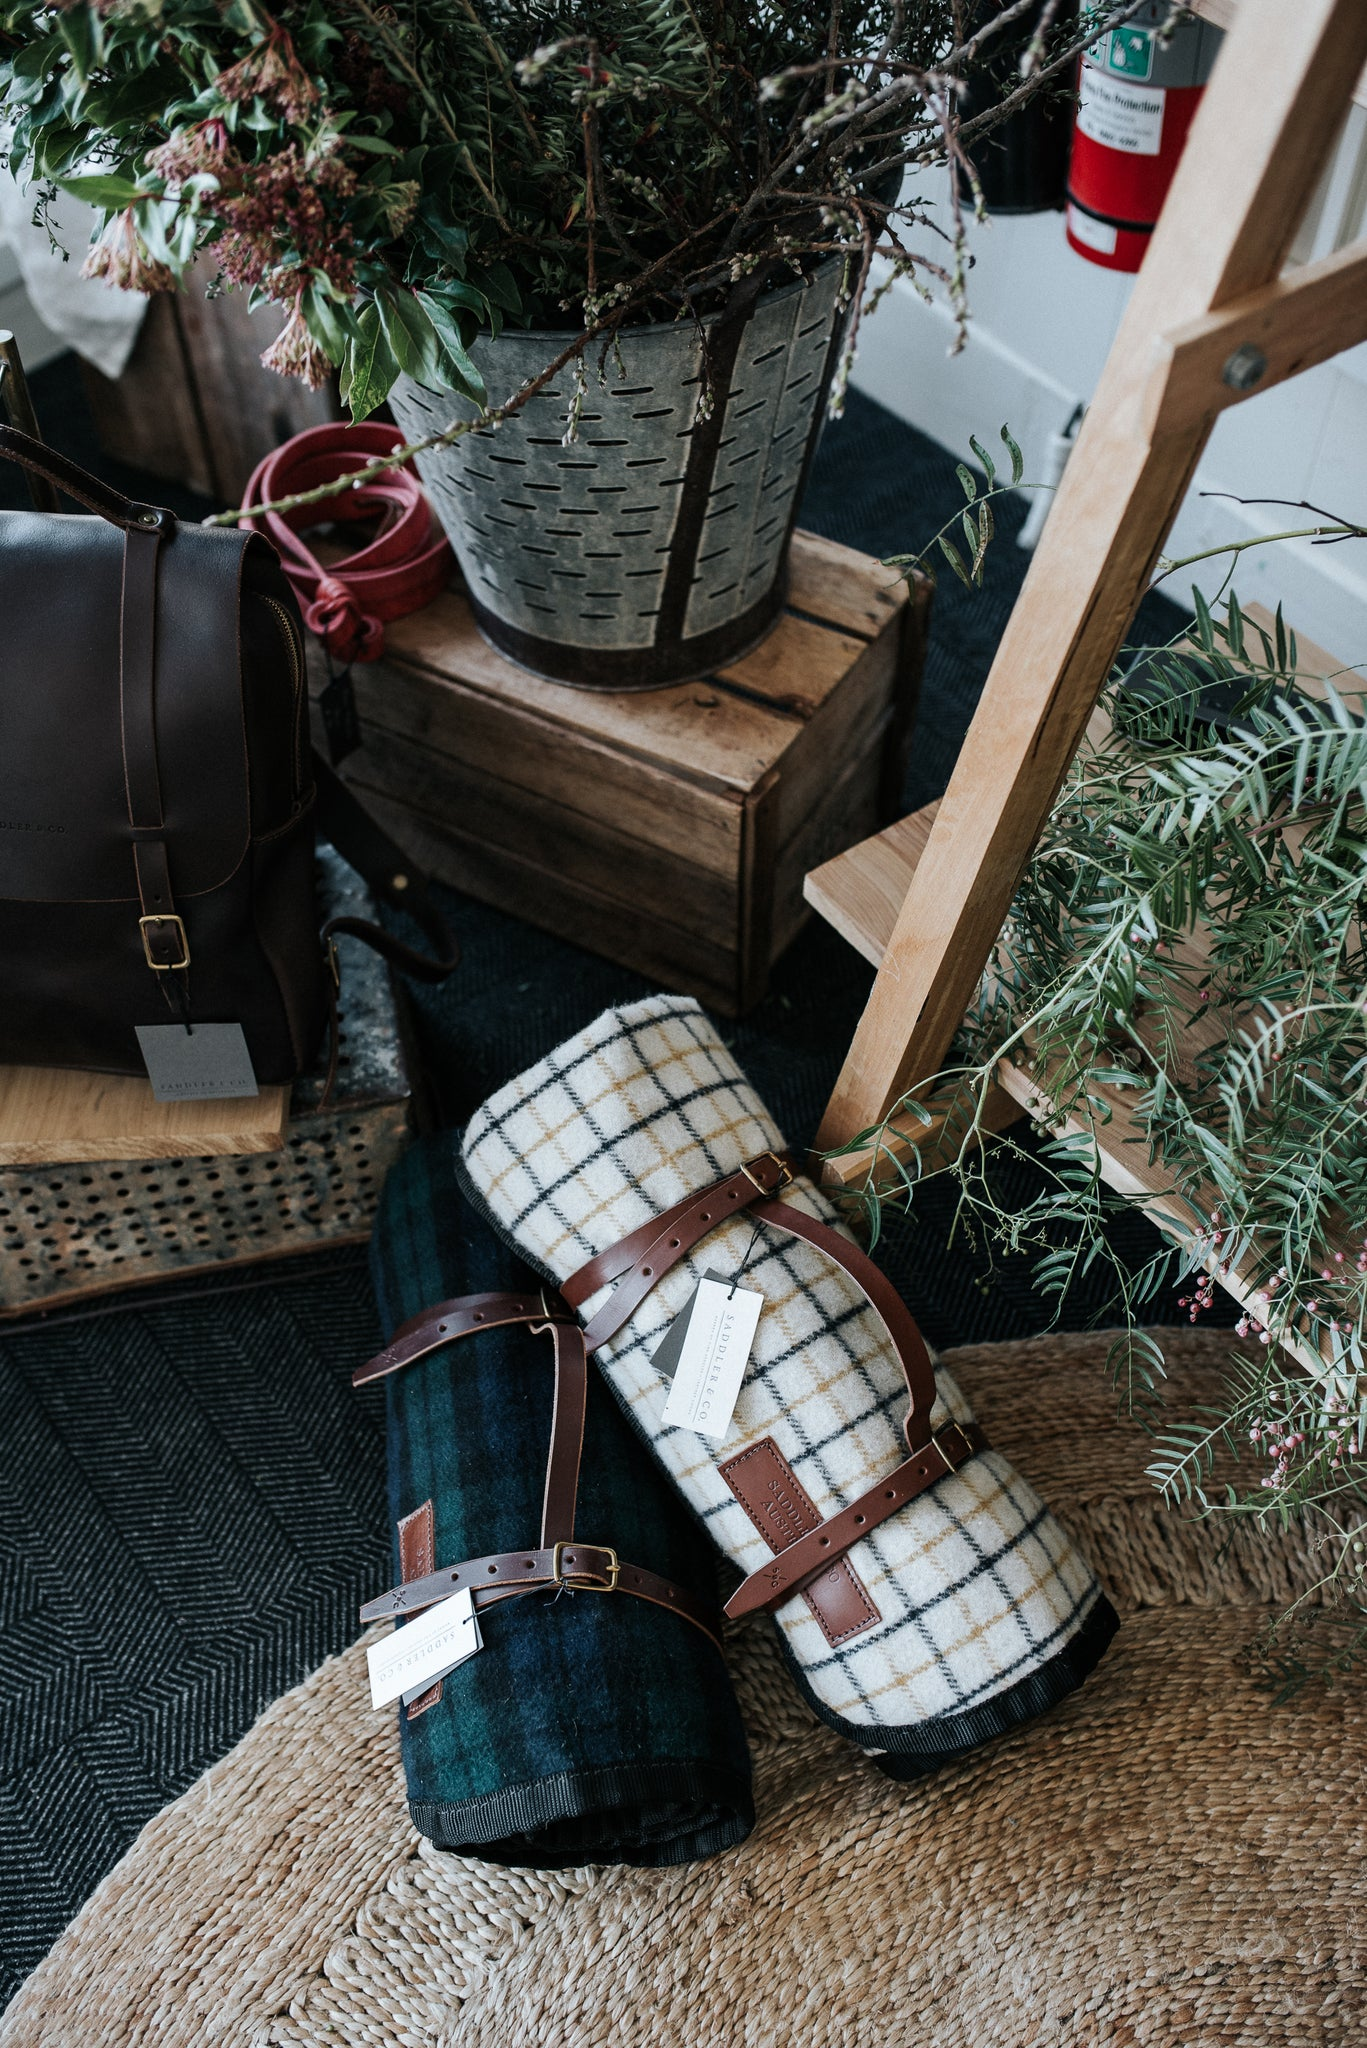 Wool and leather Picnic blankets in Wellington Popup shop, featuring Armadillo & Co rug